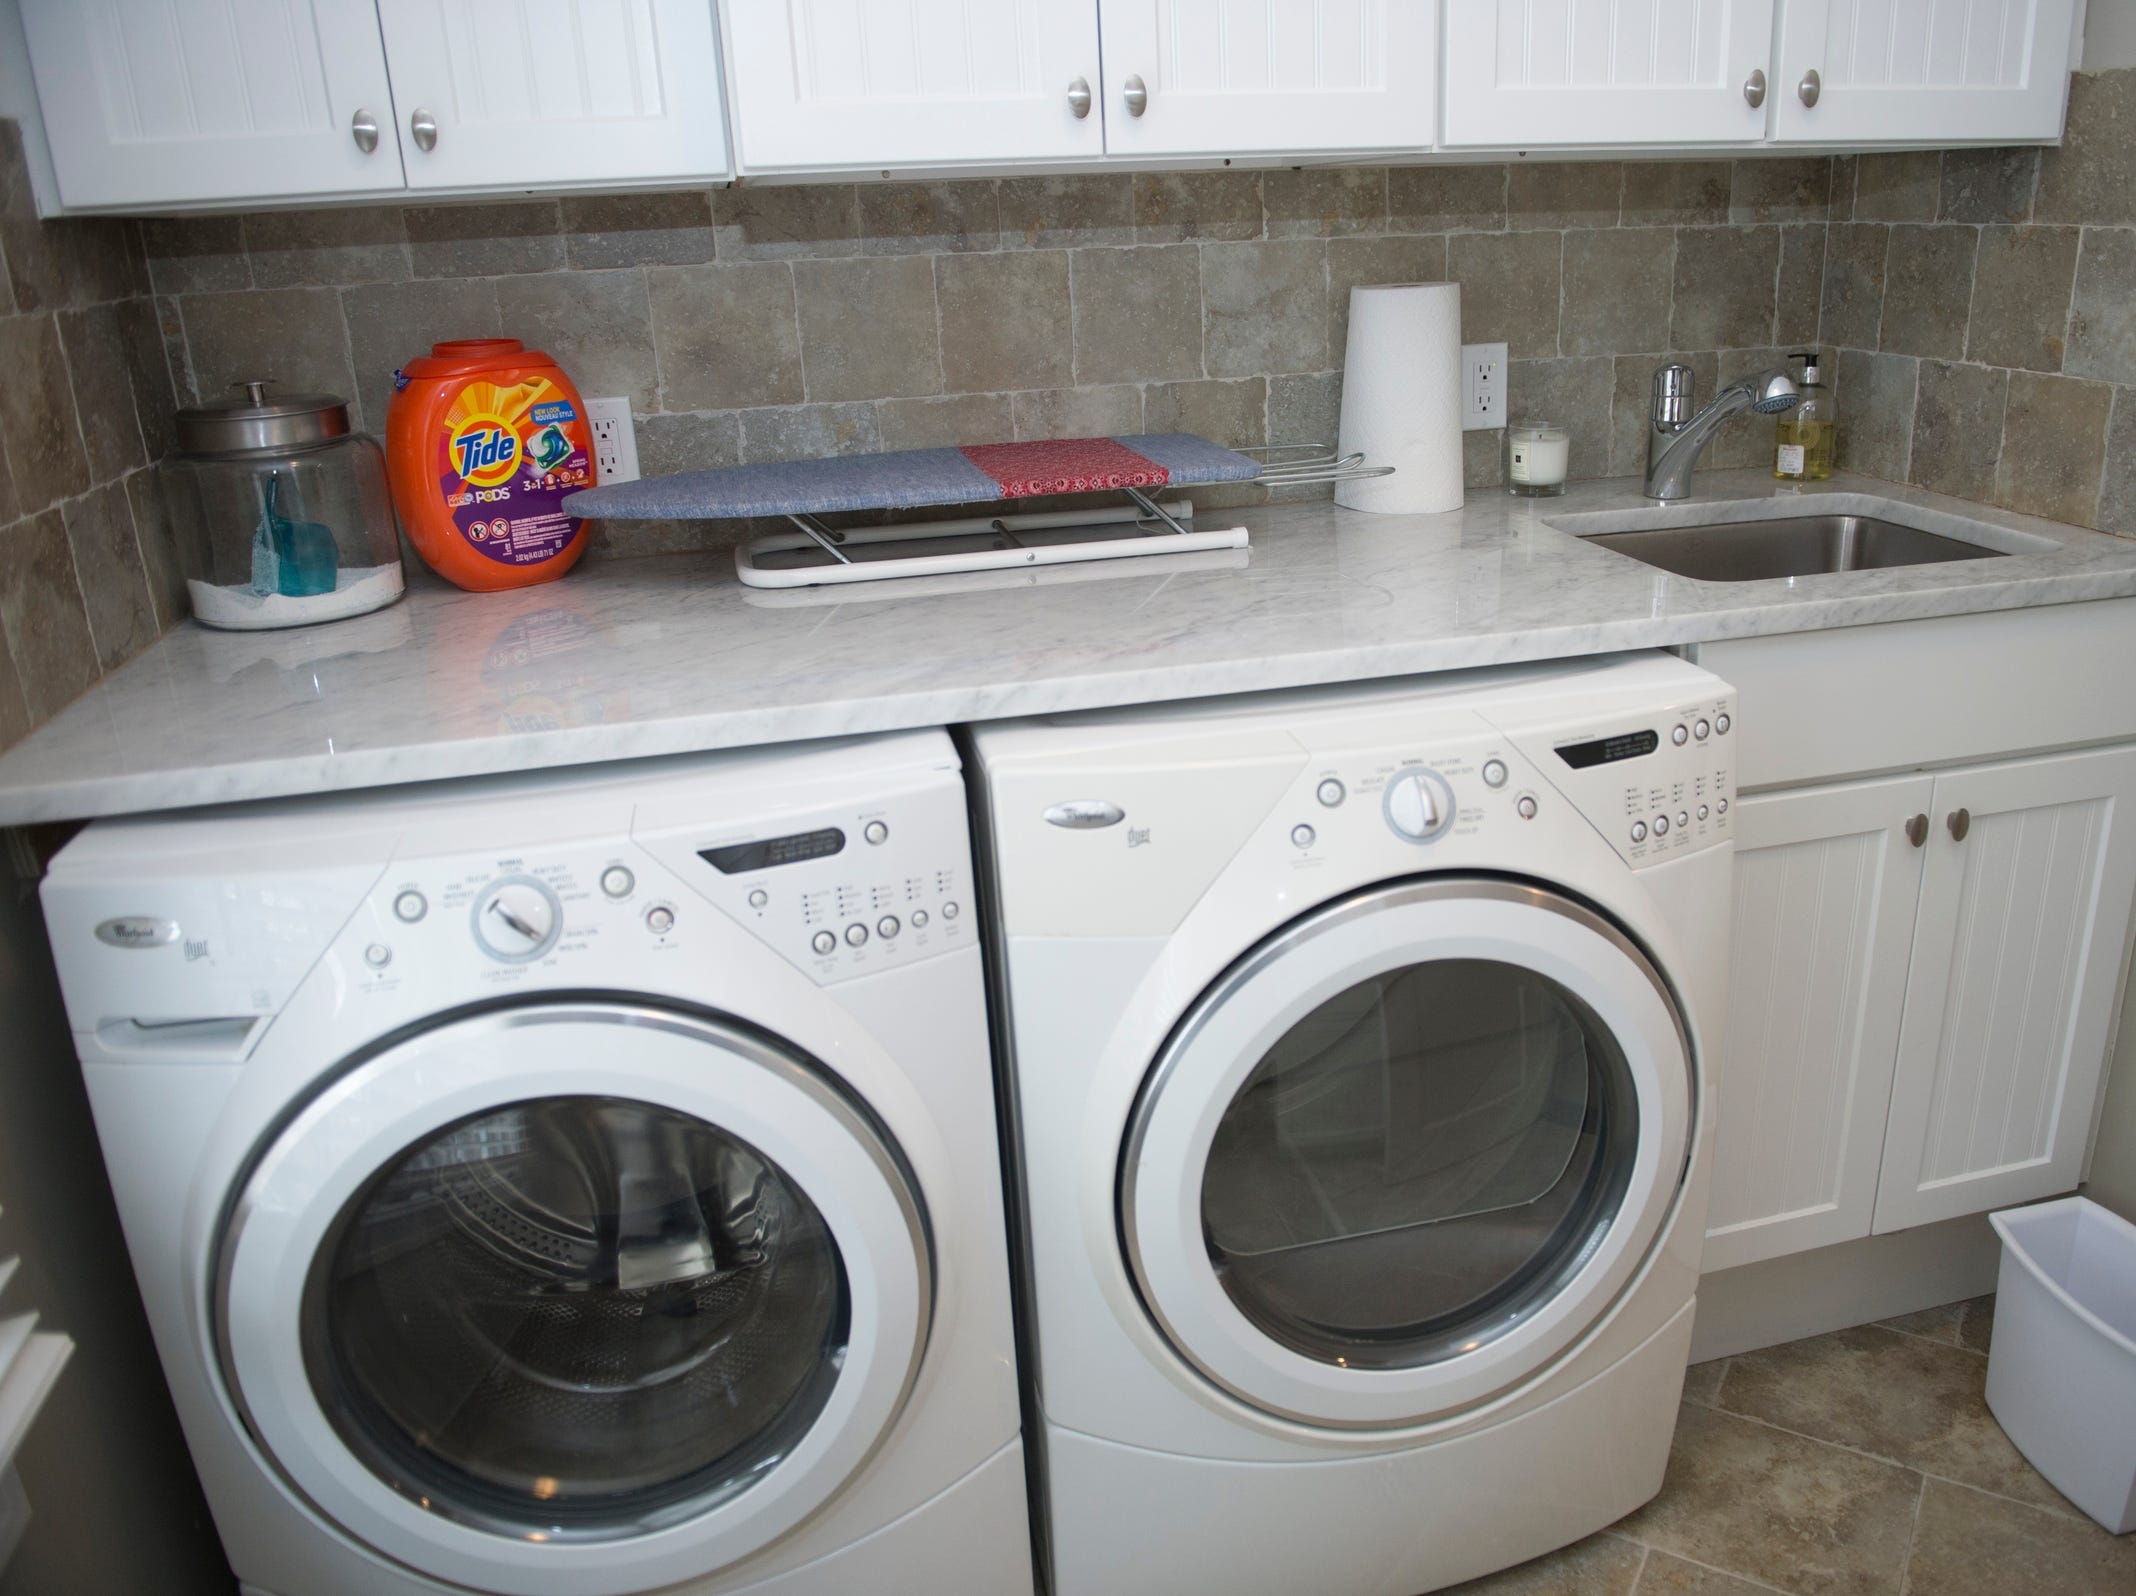 The laundry room includes a washer and drier along with a stone counter.